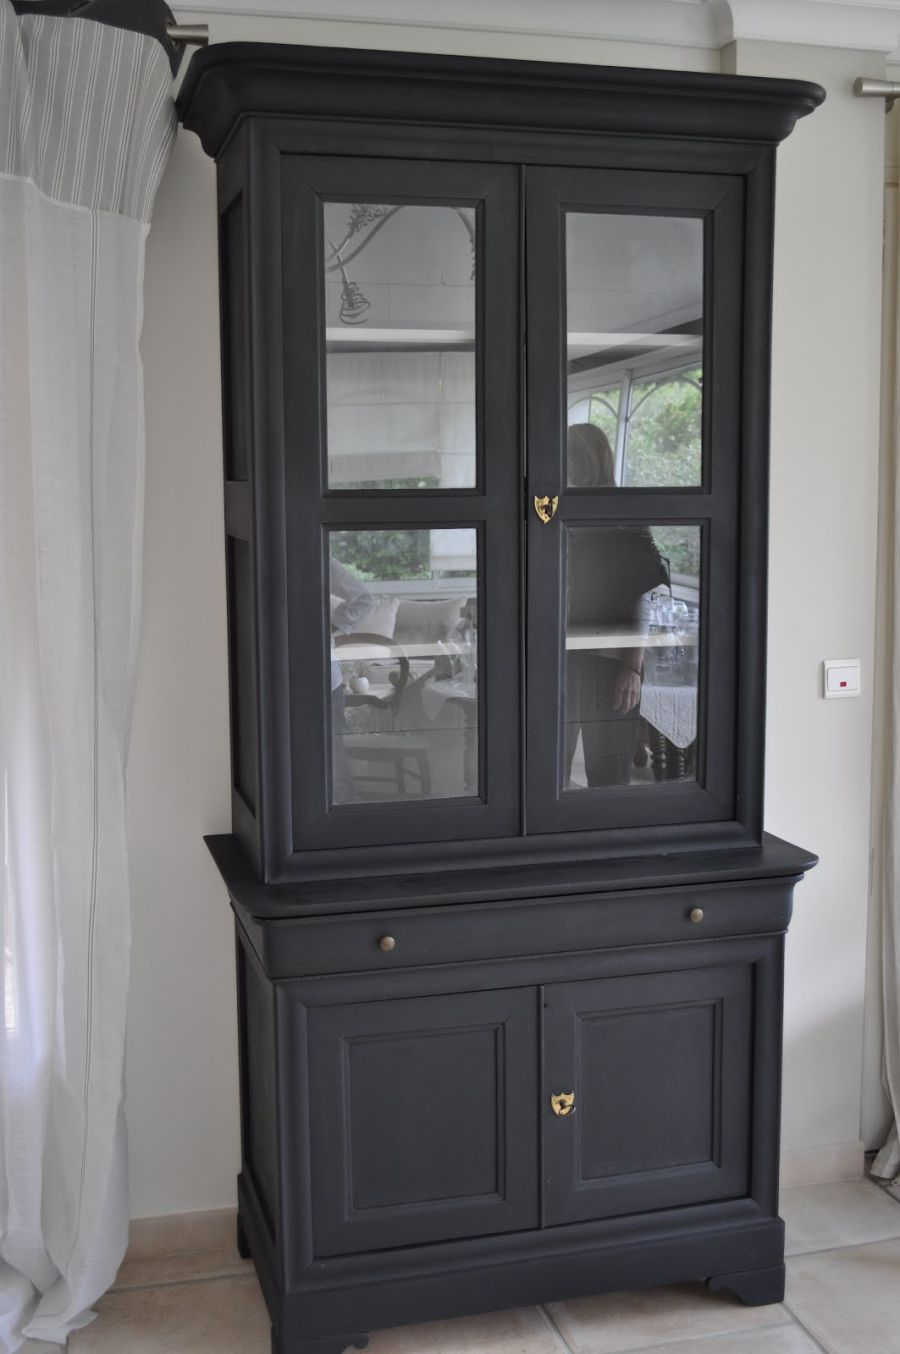 miroir pour buffet id es de d coration int rieure french decor. Black Bedroom Furniture Sets. Home Design Ideas